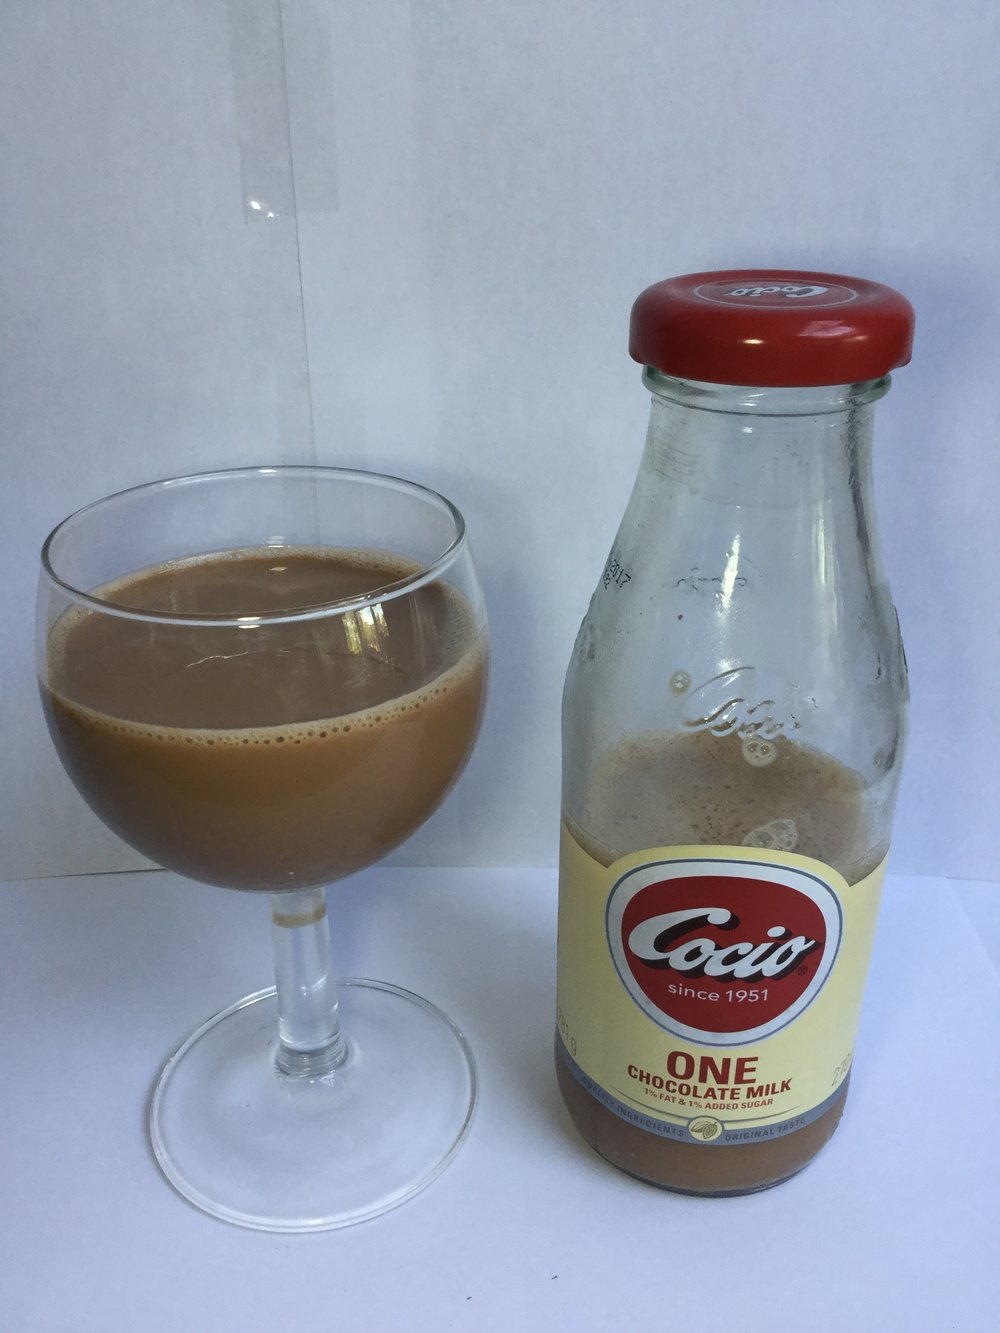 Cocio One Chocolate Milk Cup